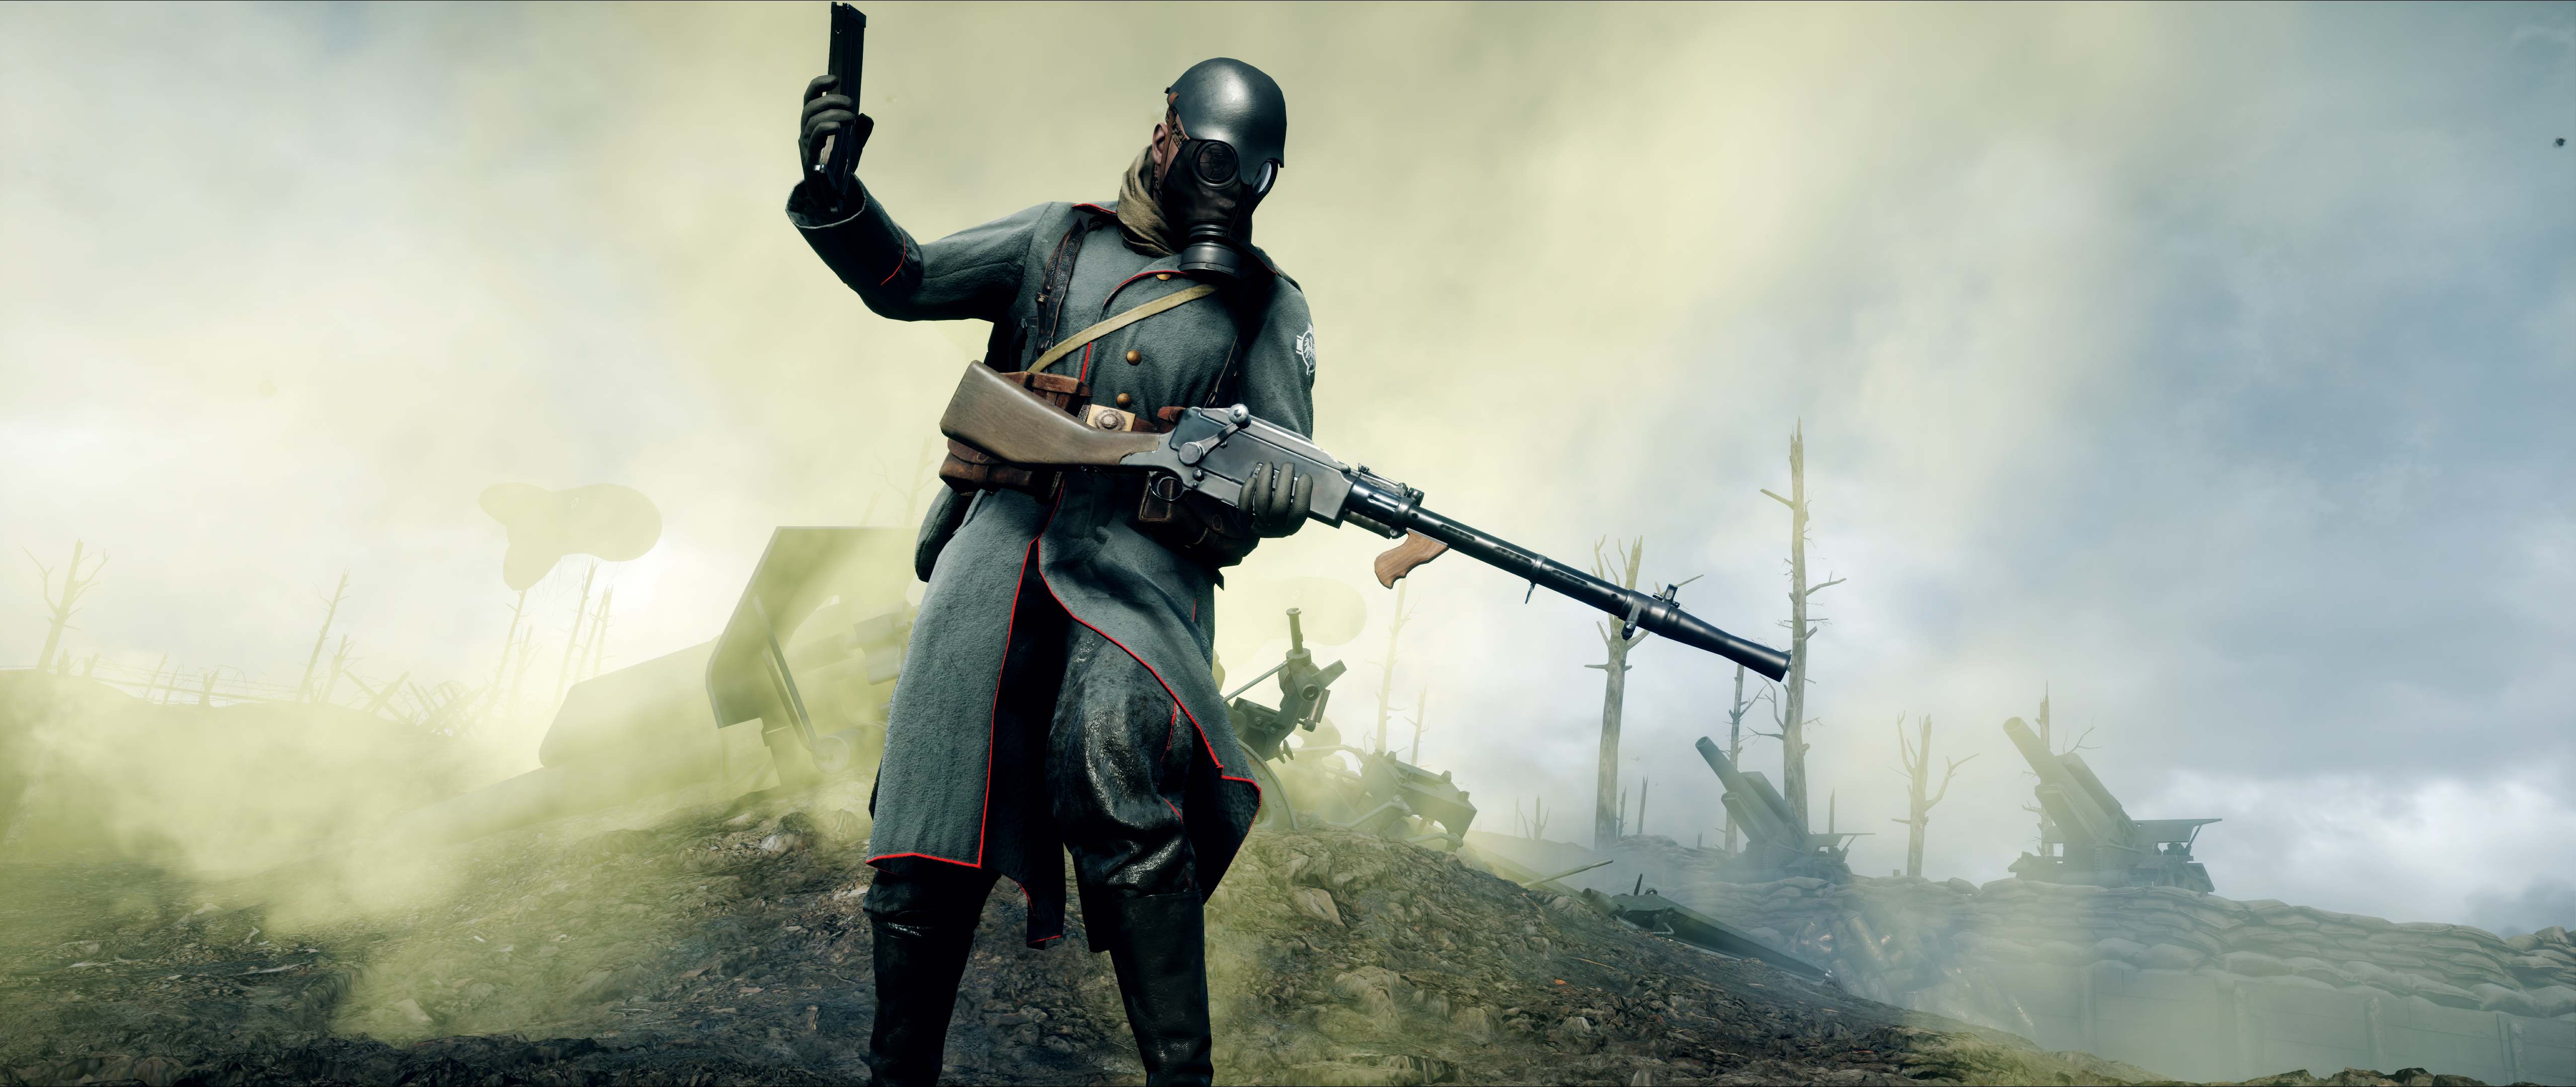 Relative 81 4K Ultra HD Battlefield 1 Wallpapers | Background Images  CB07